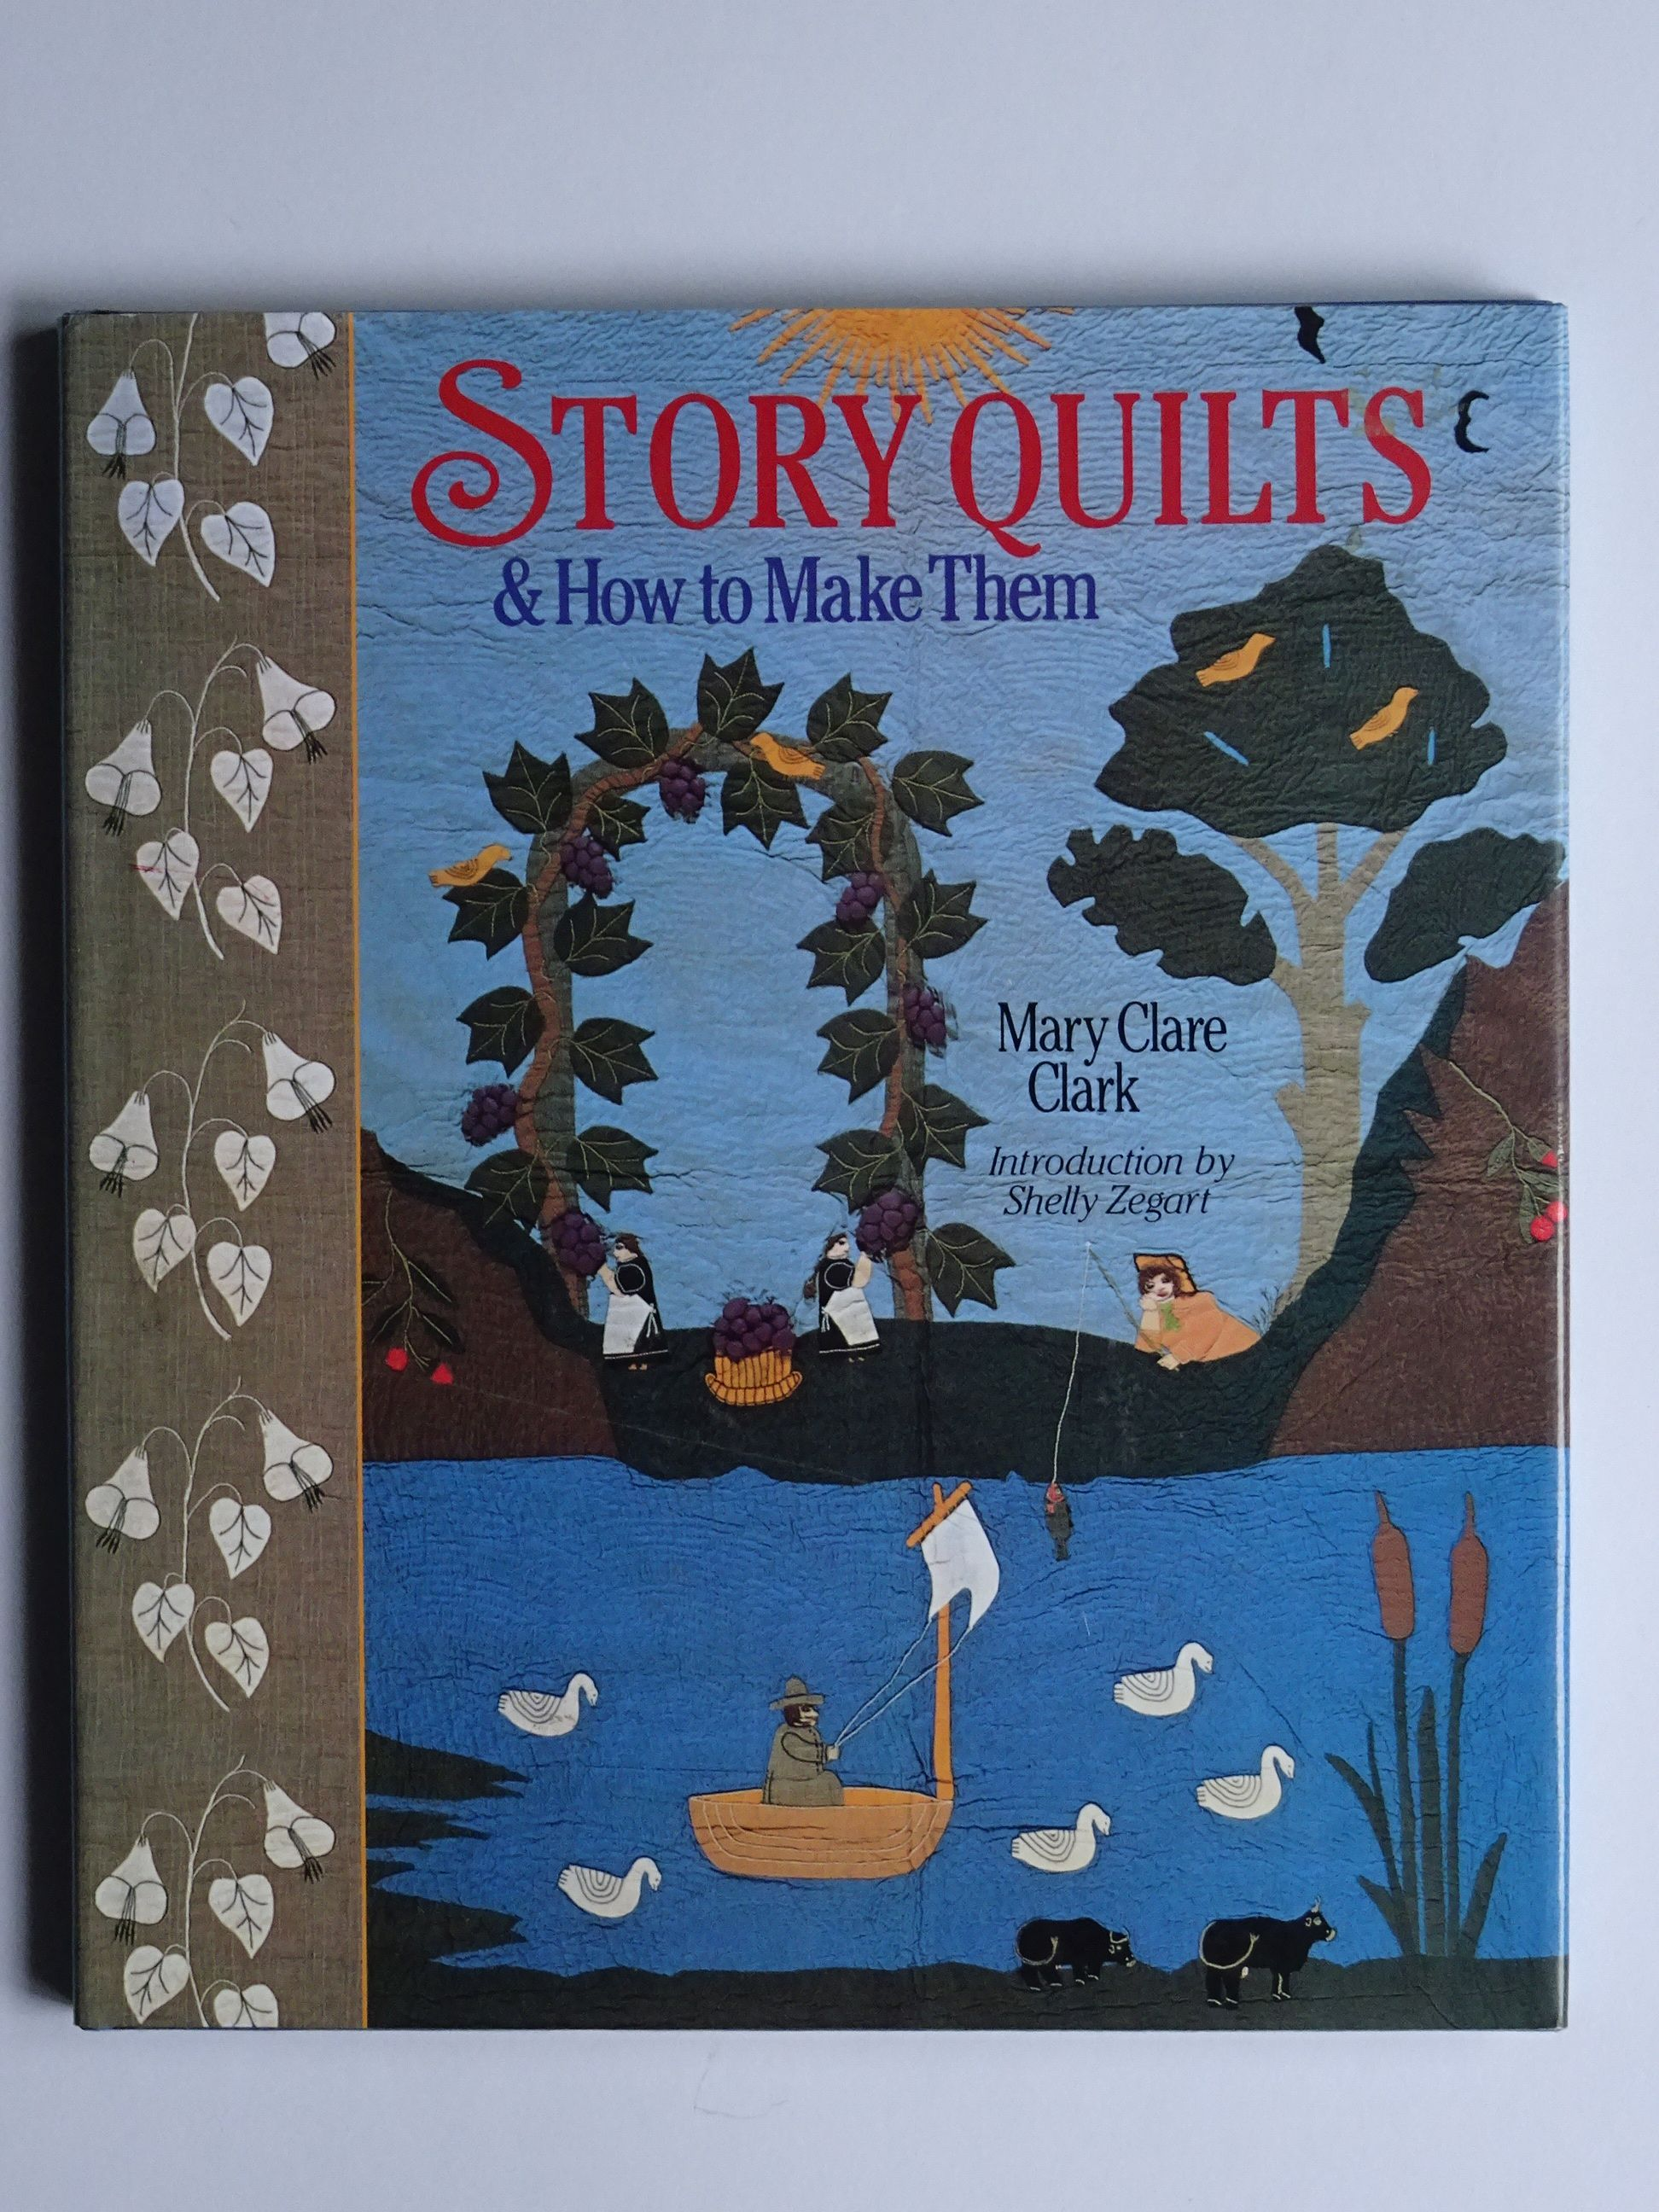 Clark, Mary Clare - Story Quilts & how to make them